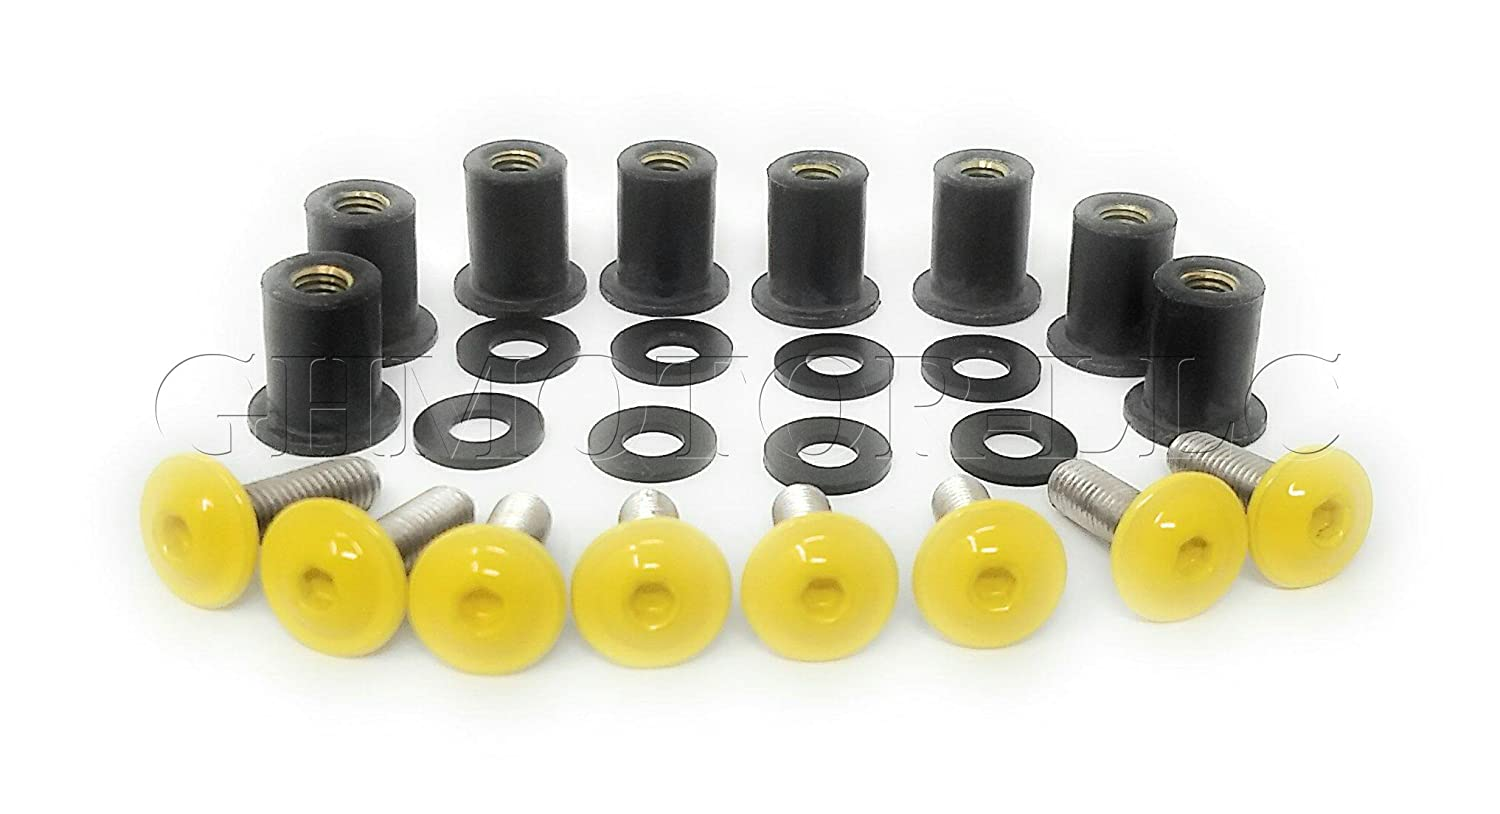 GHMotor 2010 2011 2012 2013 2014 2015 2016 2017 S1000rr Hp4 Oem Style Windscreen Bolts Kit YELLOW